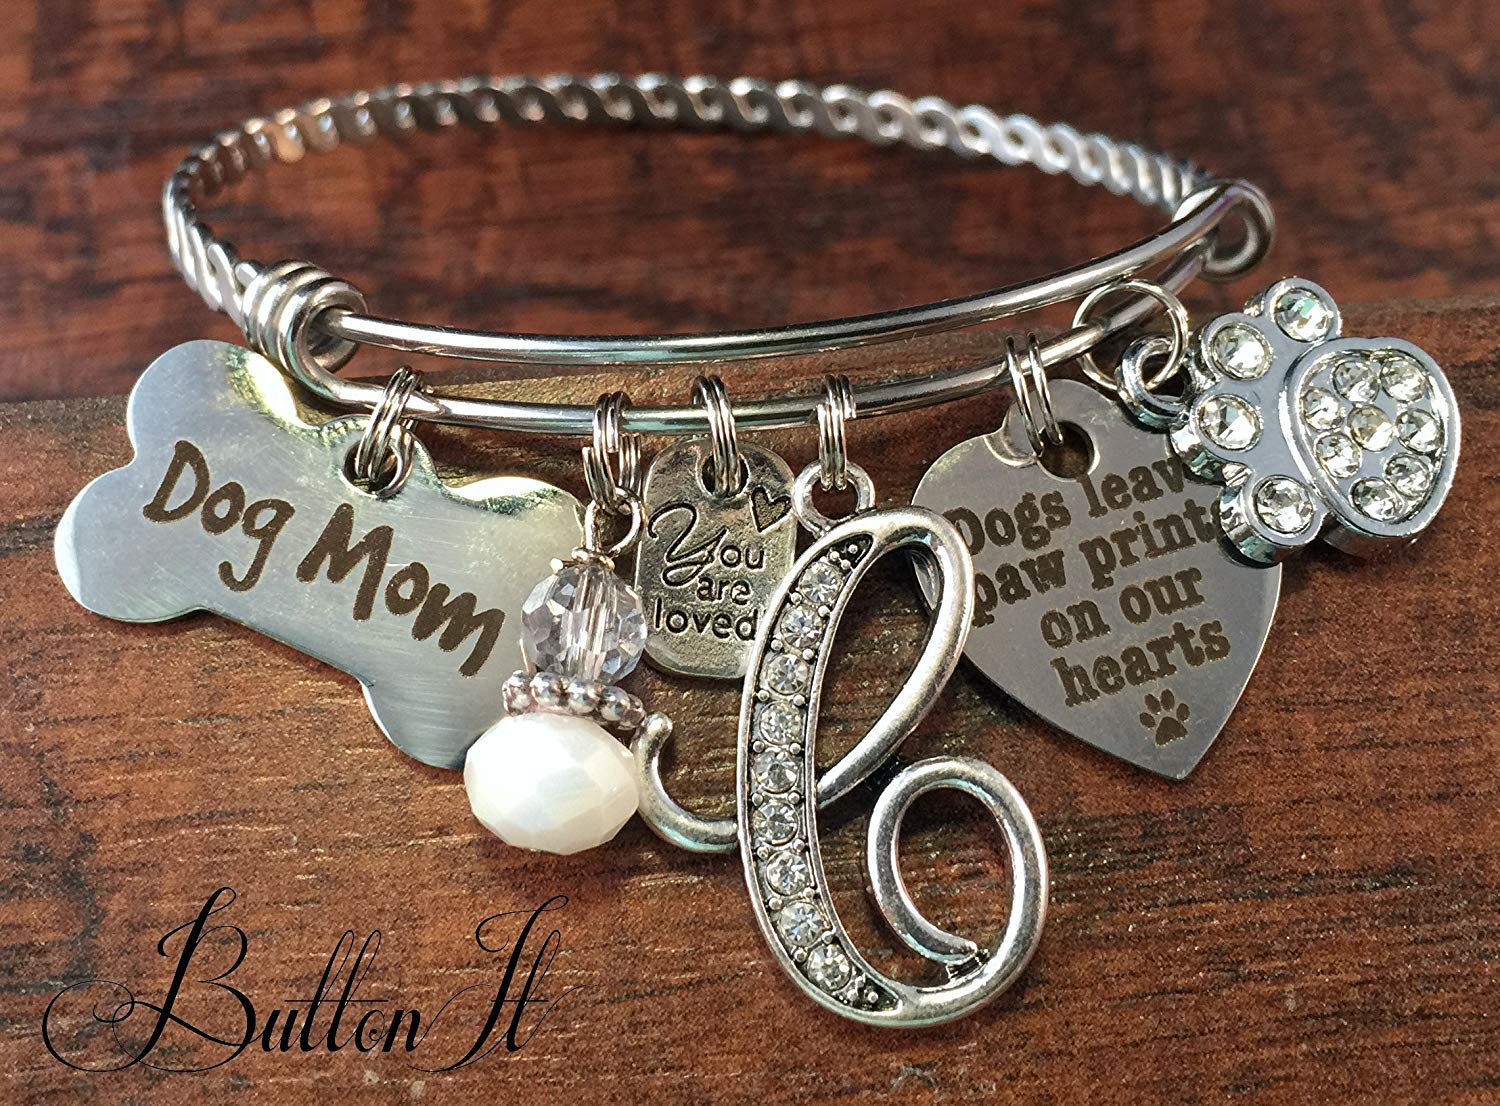 4cac92de2 Get Quotations · BANGLE bracelet, Pet loss gifts, Dog mom, Animal lover  jewelry, Pet memorial